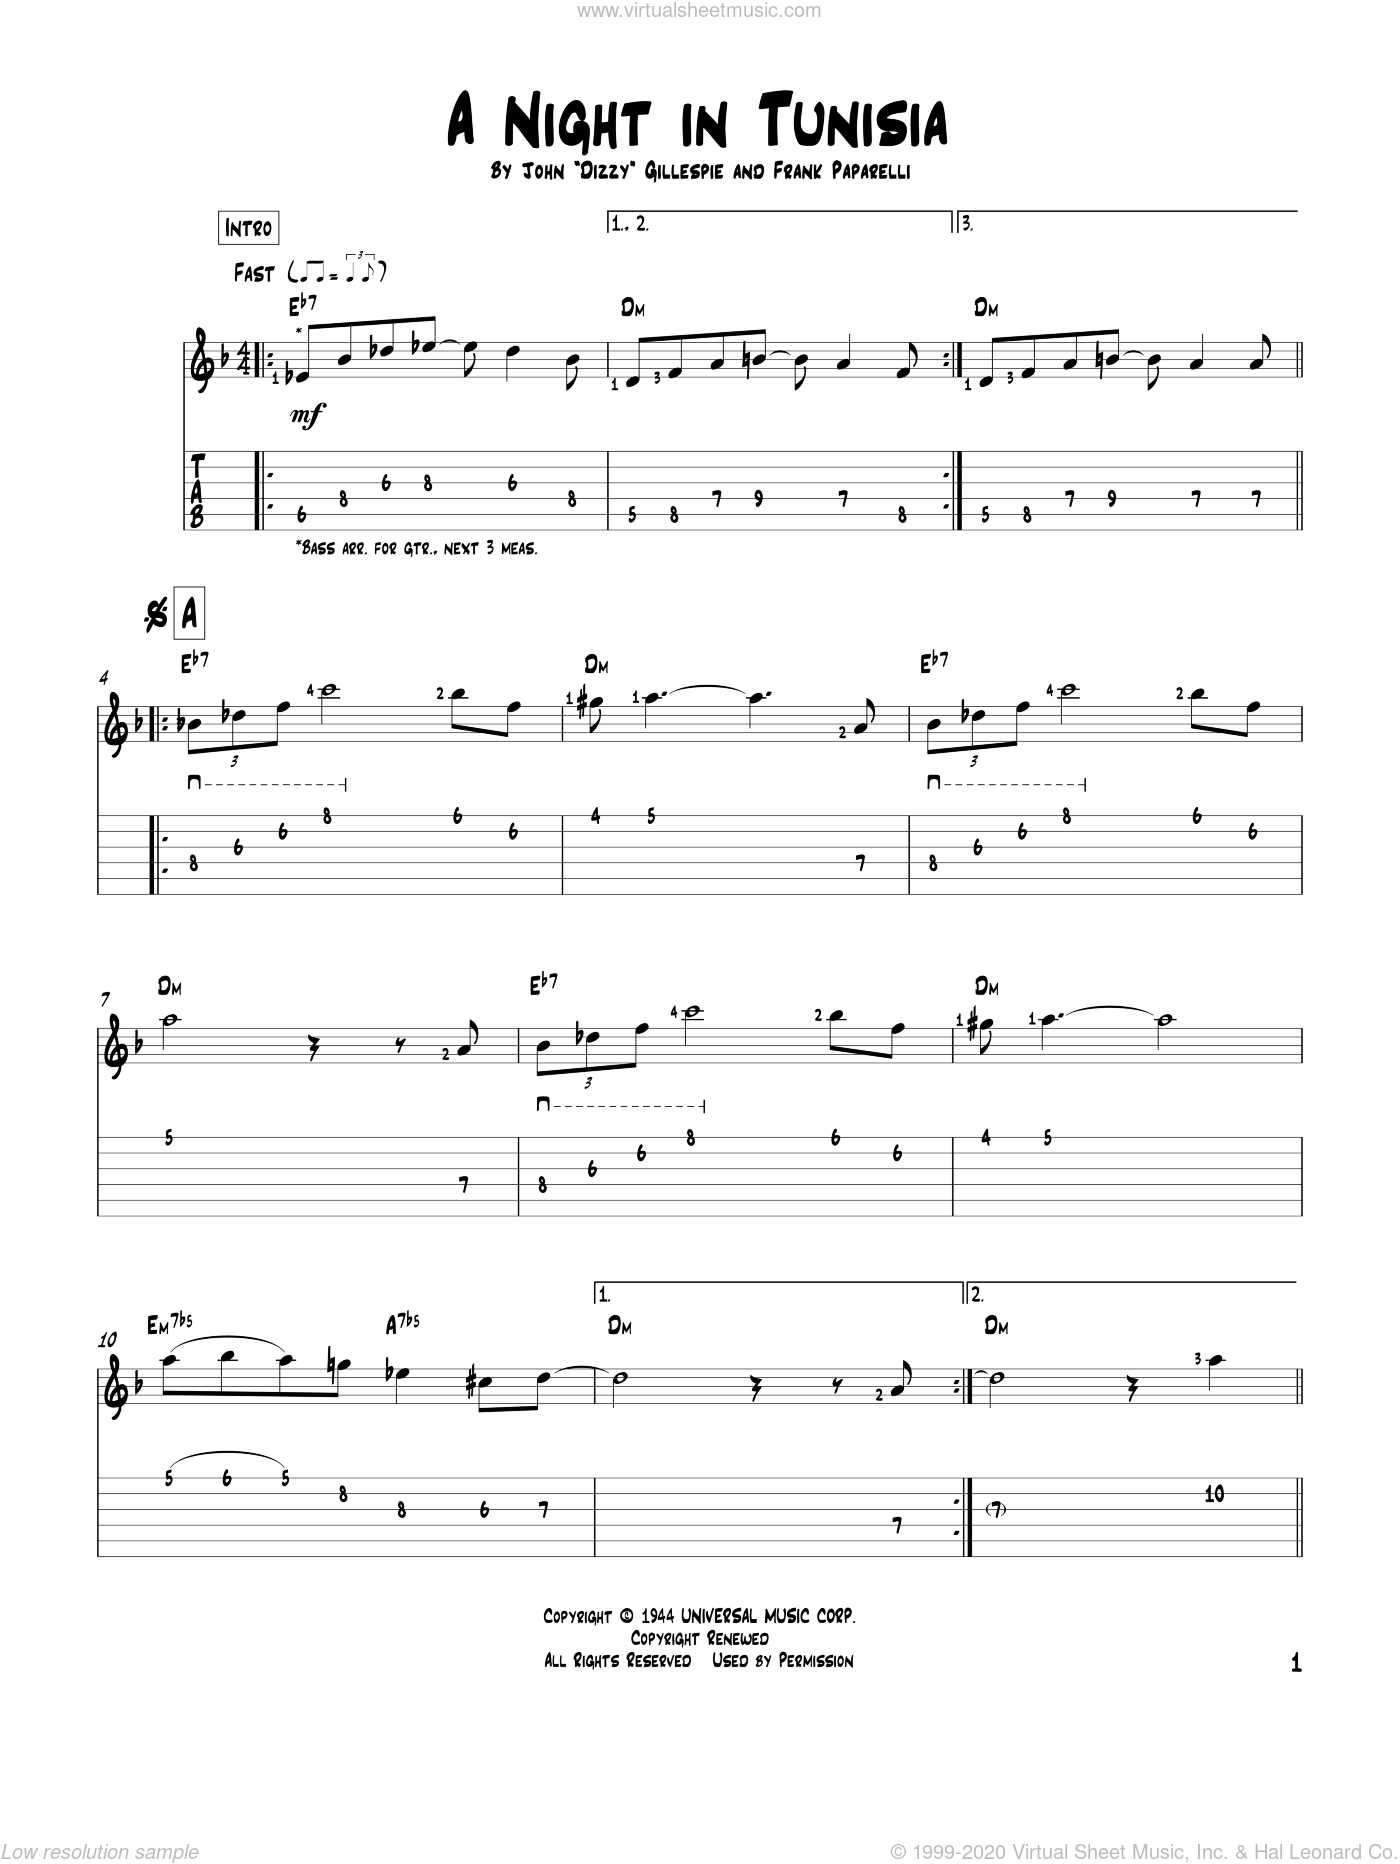 A Night In Tunisia sheet music for guitar solo by Dizzy Gillespie and Frank Paparelli, intermediate